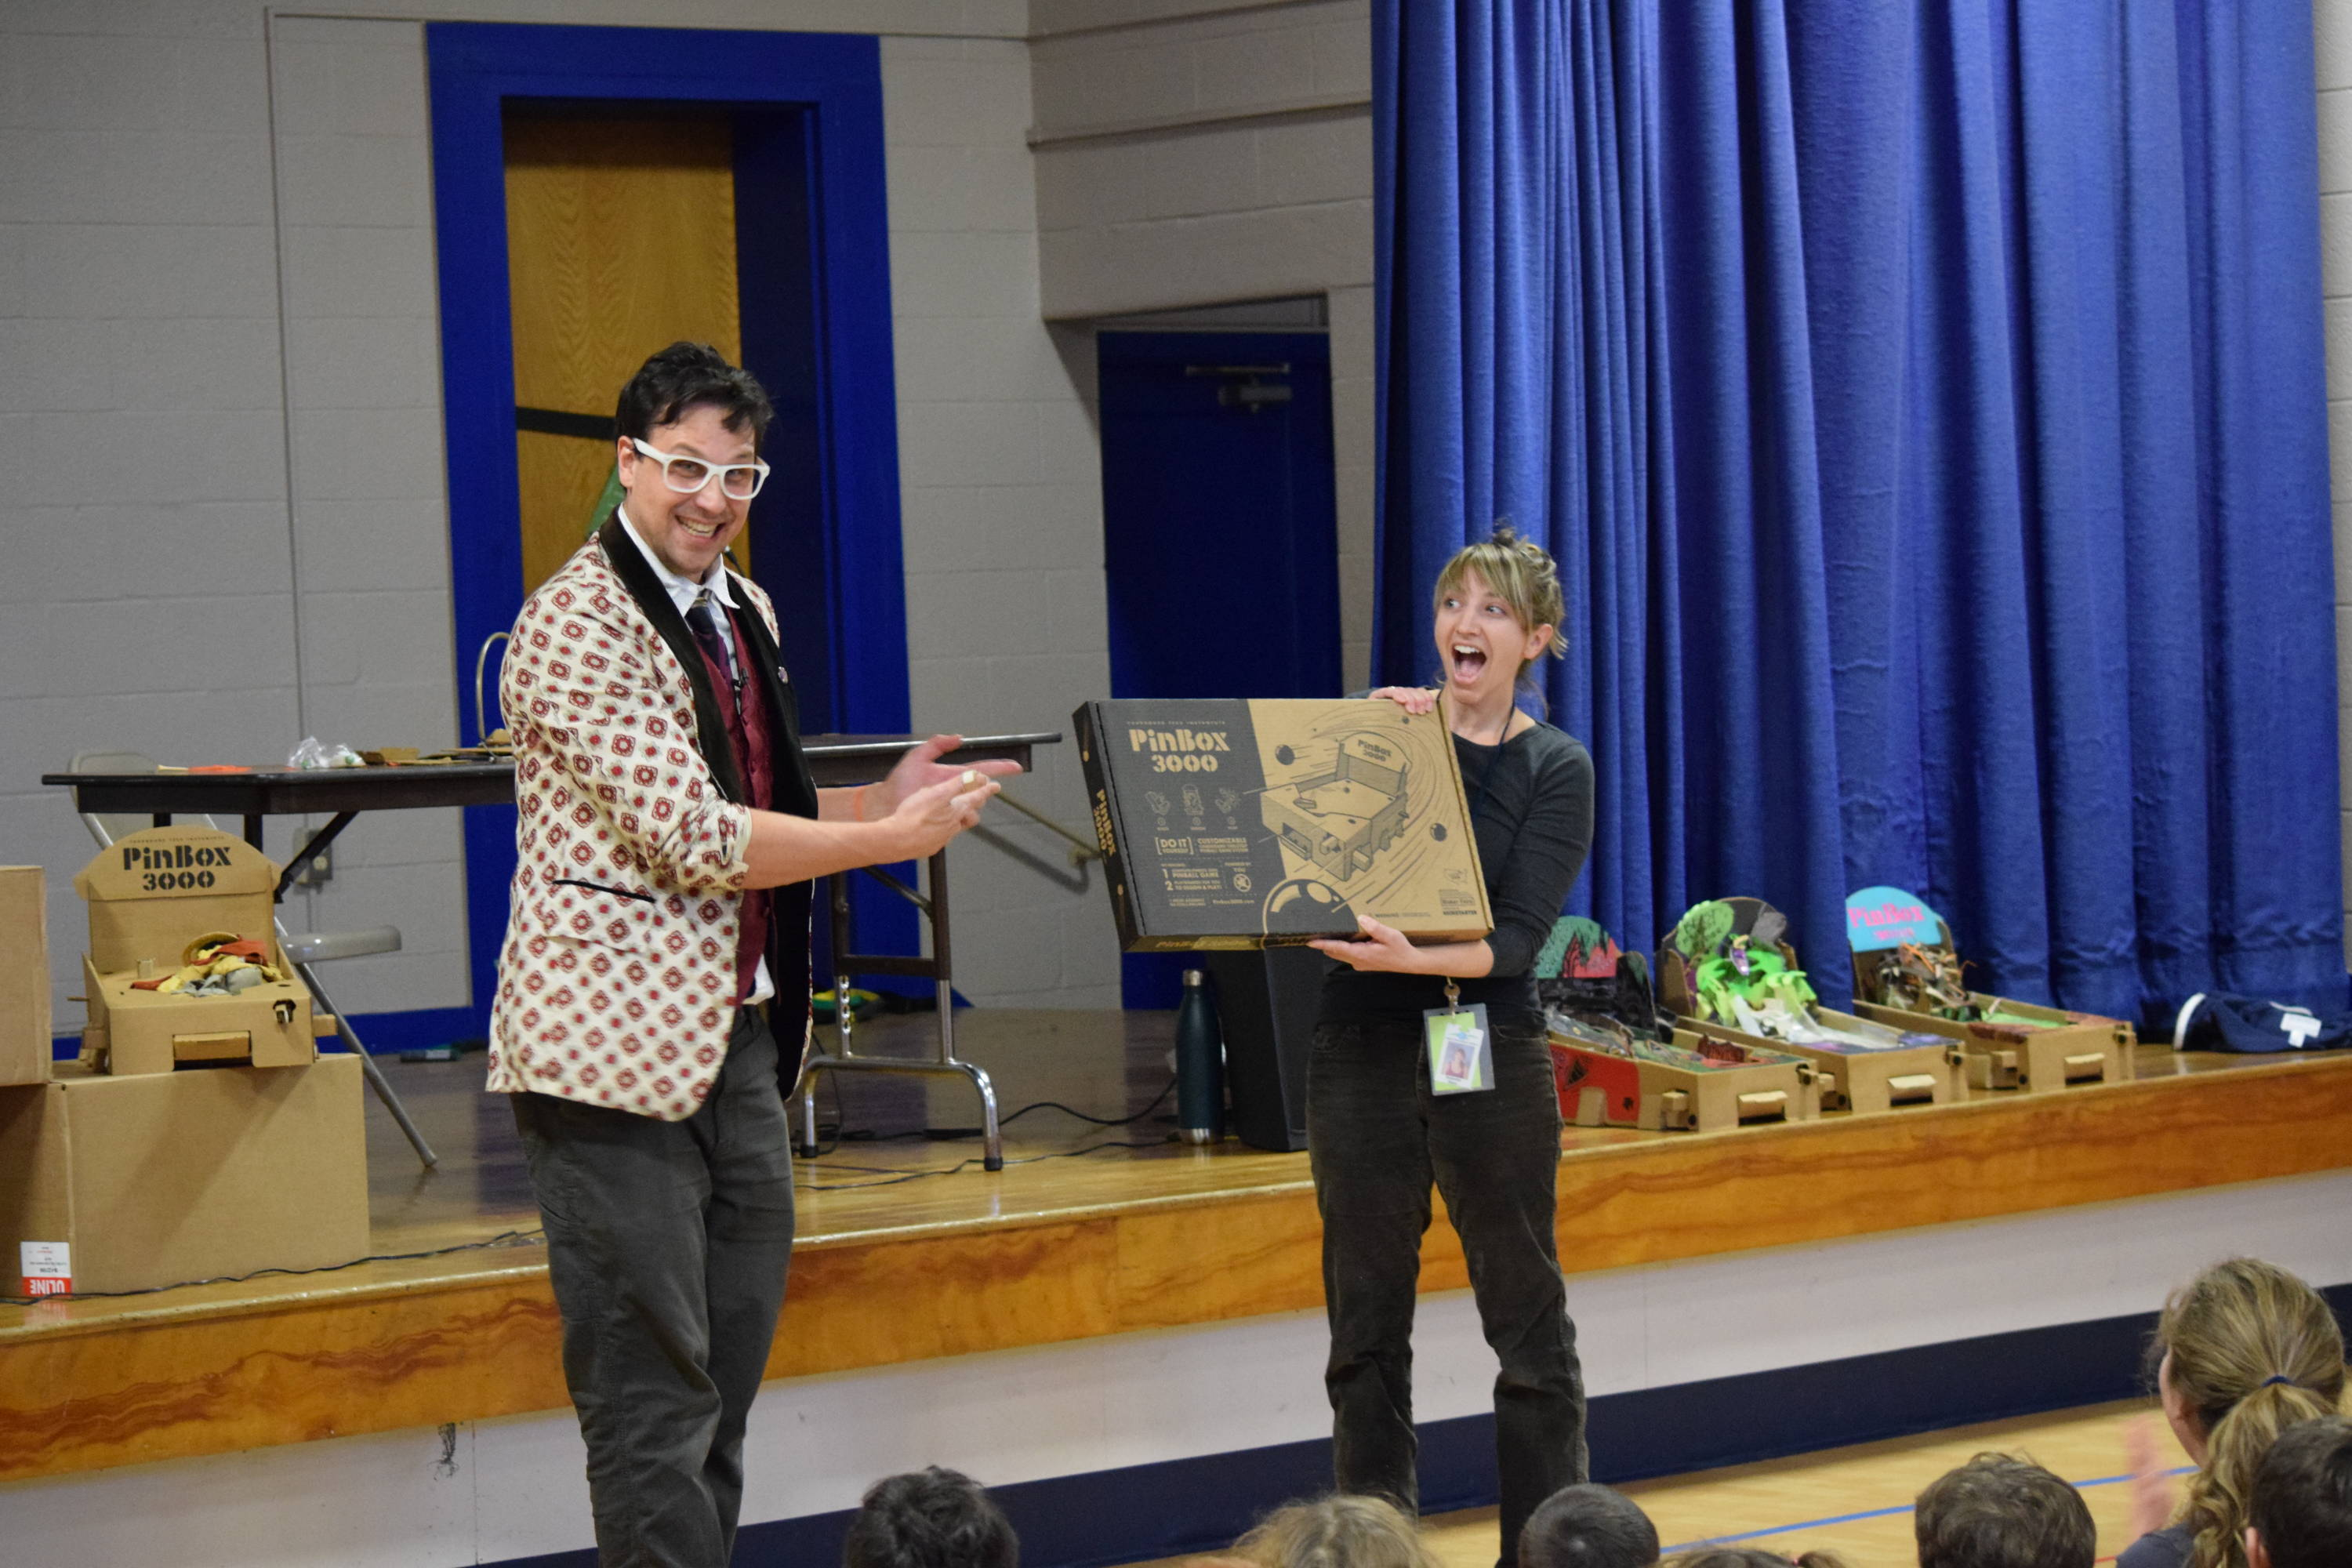 Ben gives art teacher Miss Blain a PinBox 3000.